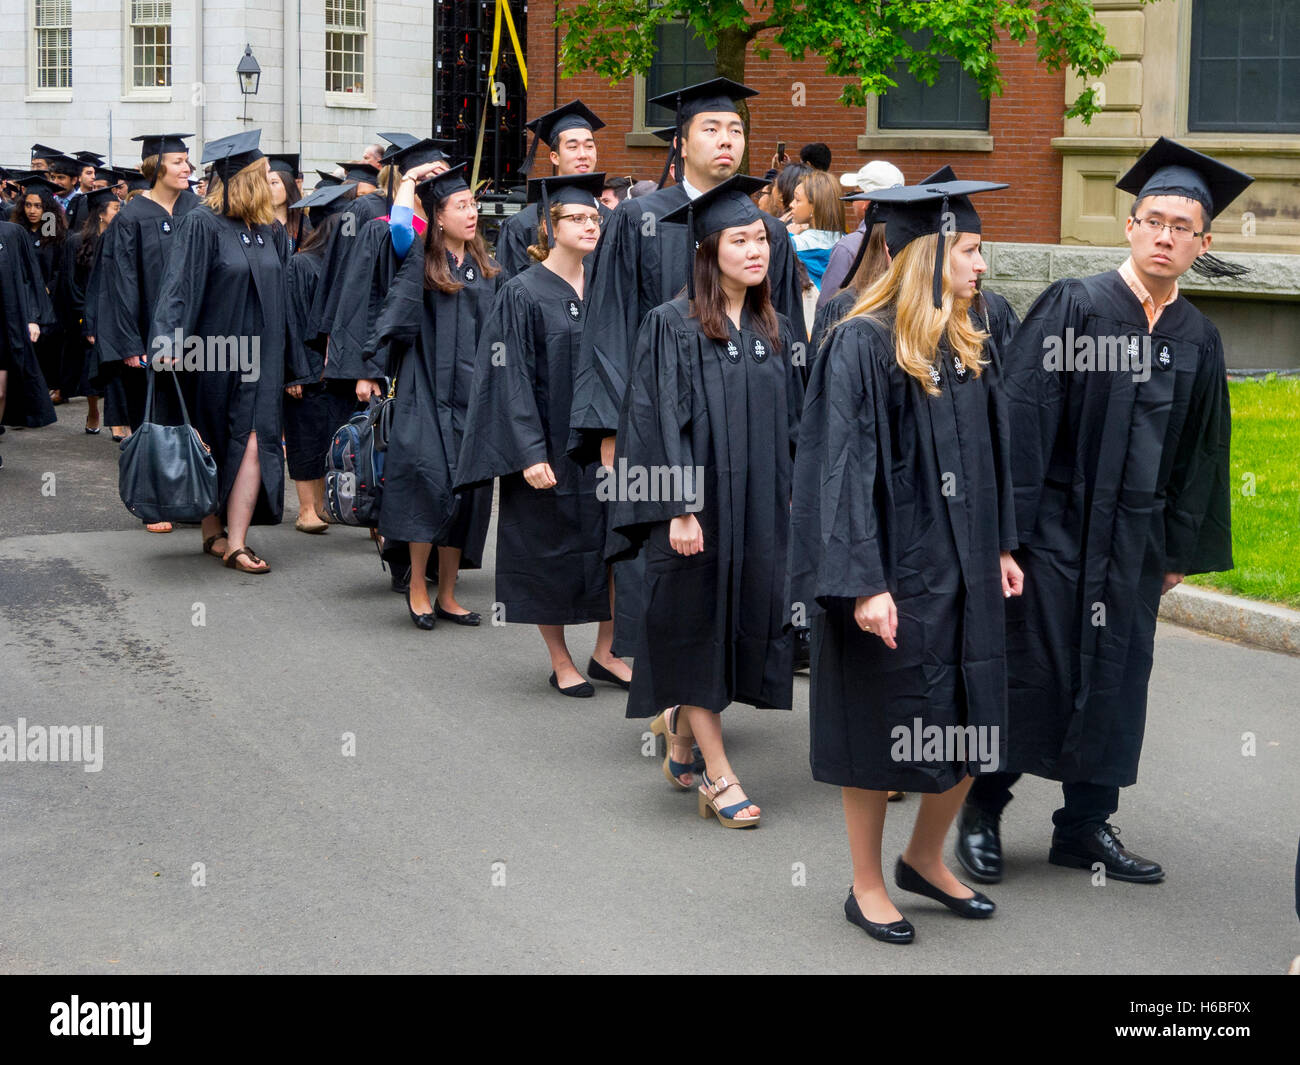 Wearing graduation caps and gowns, multiracial Harvard University ...